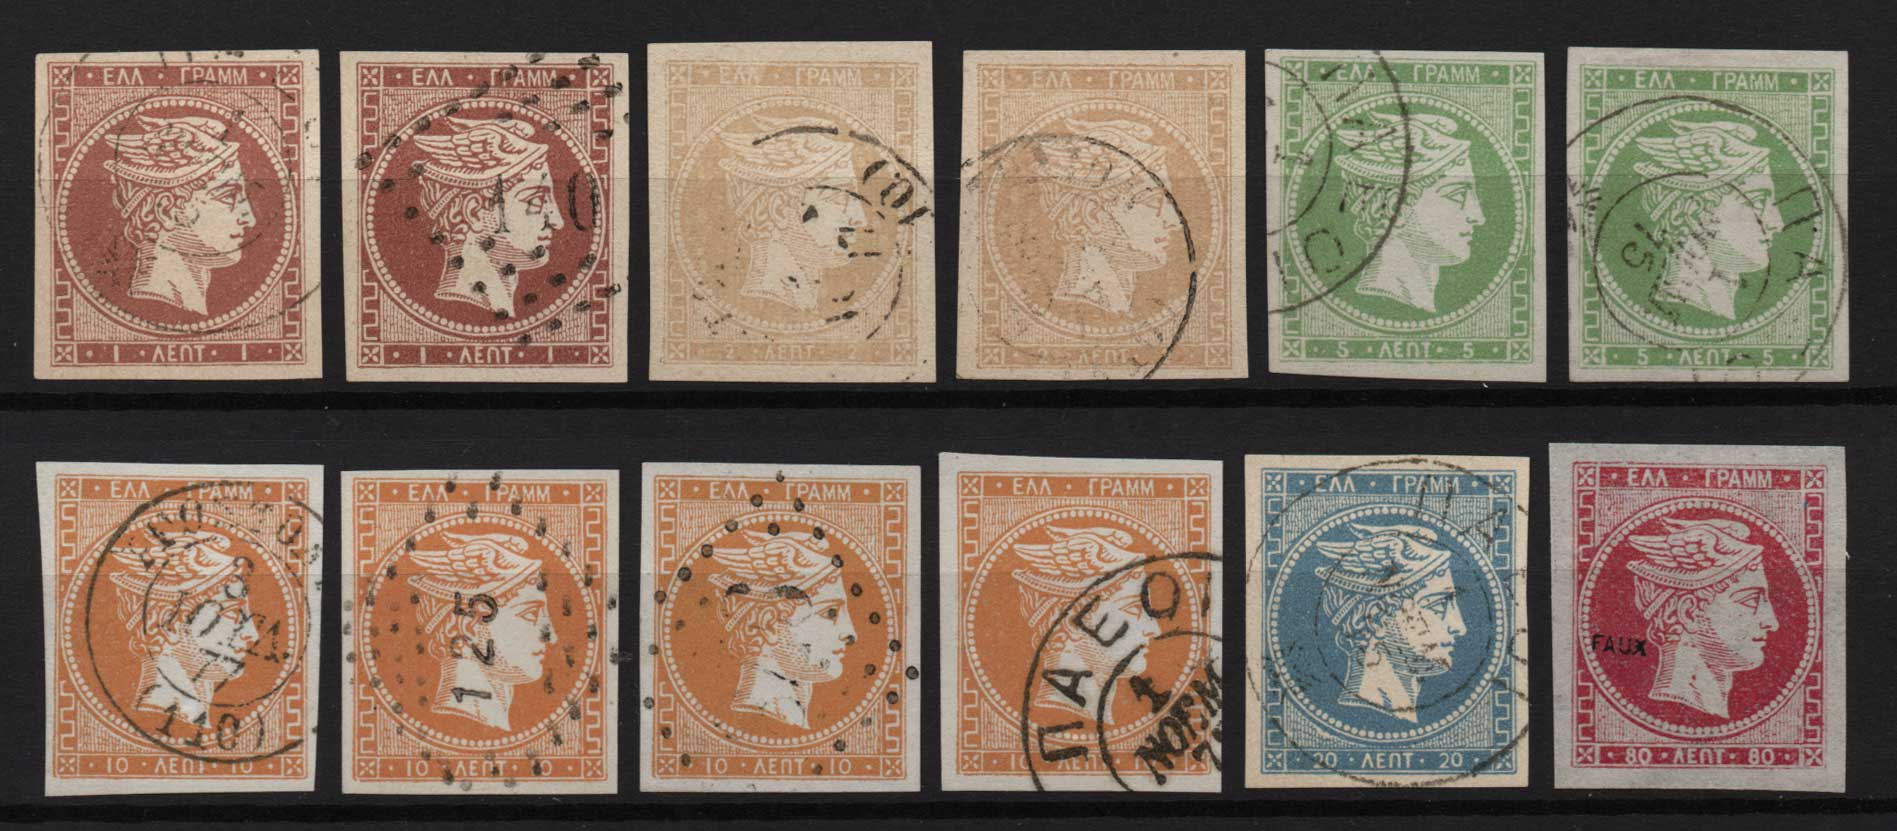 Lot 21 - - FORGERY forgery -  Athens Auctions Public Auction 70 General Stamp Sale